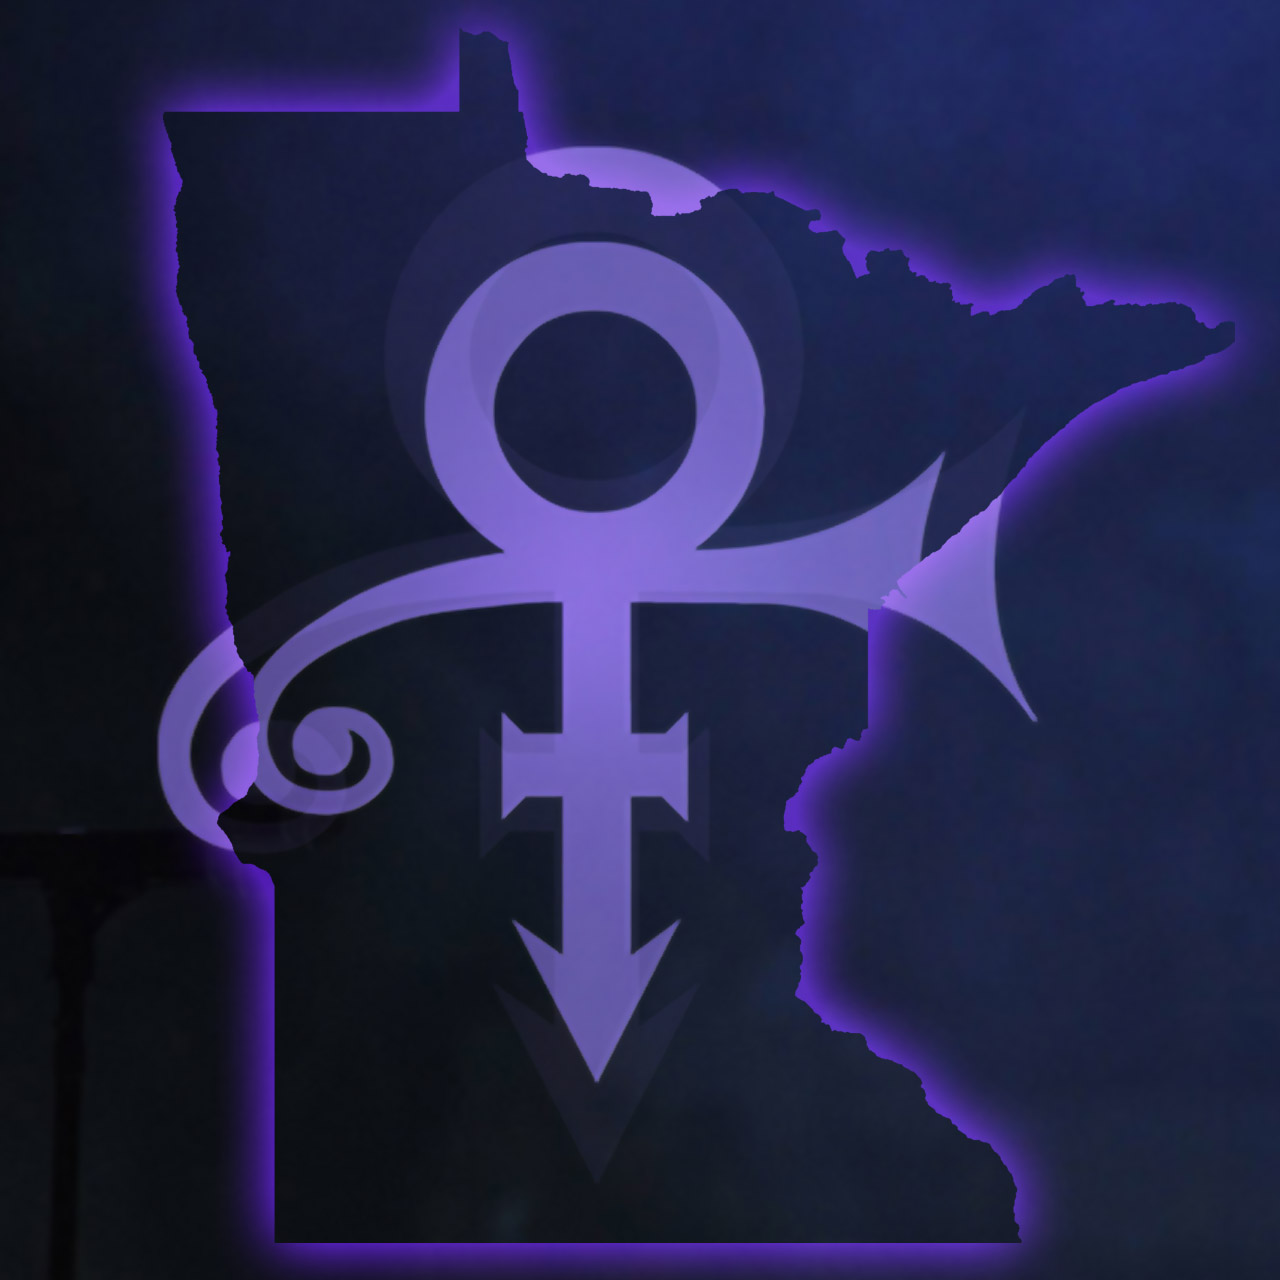 Prince symbol over Minnesota sports teams